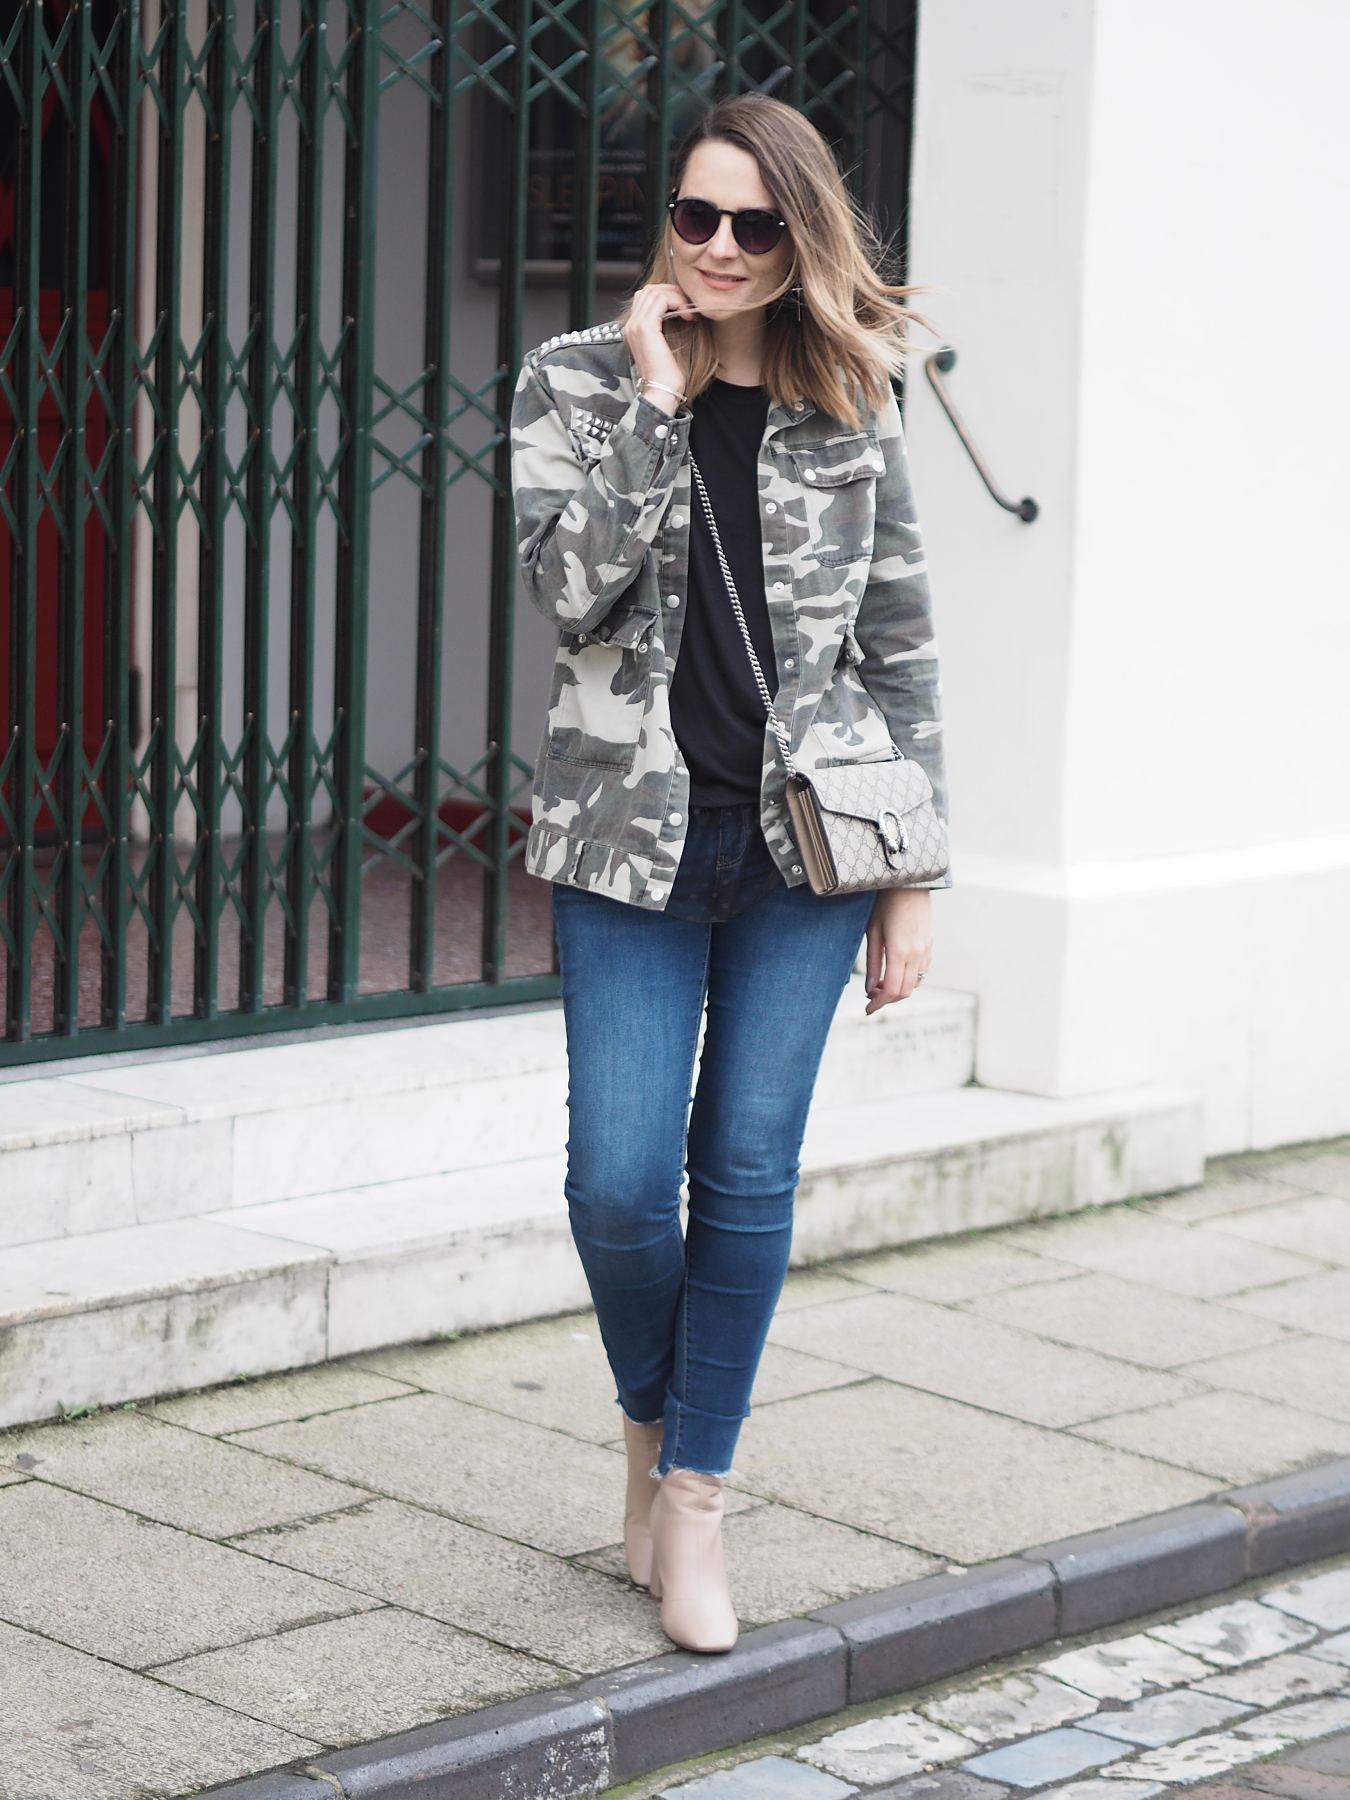 camouflage jackets jacket and jeans outfit